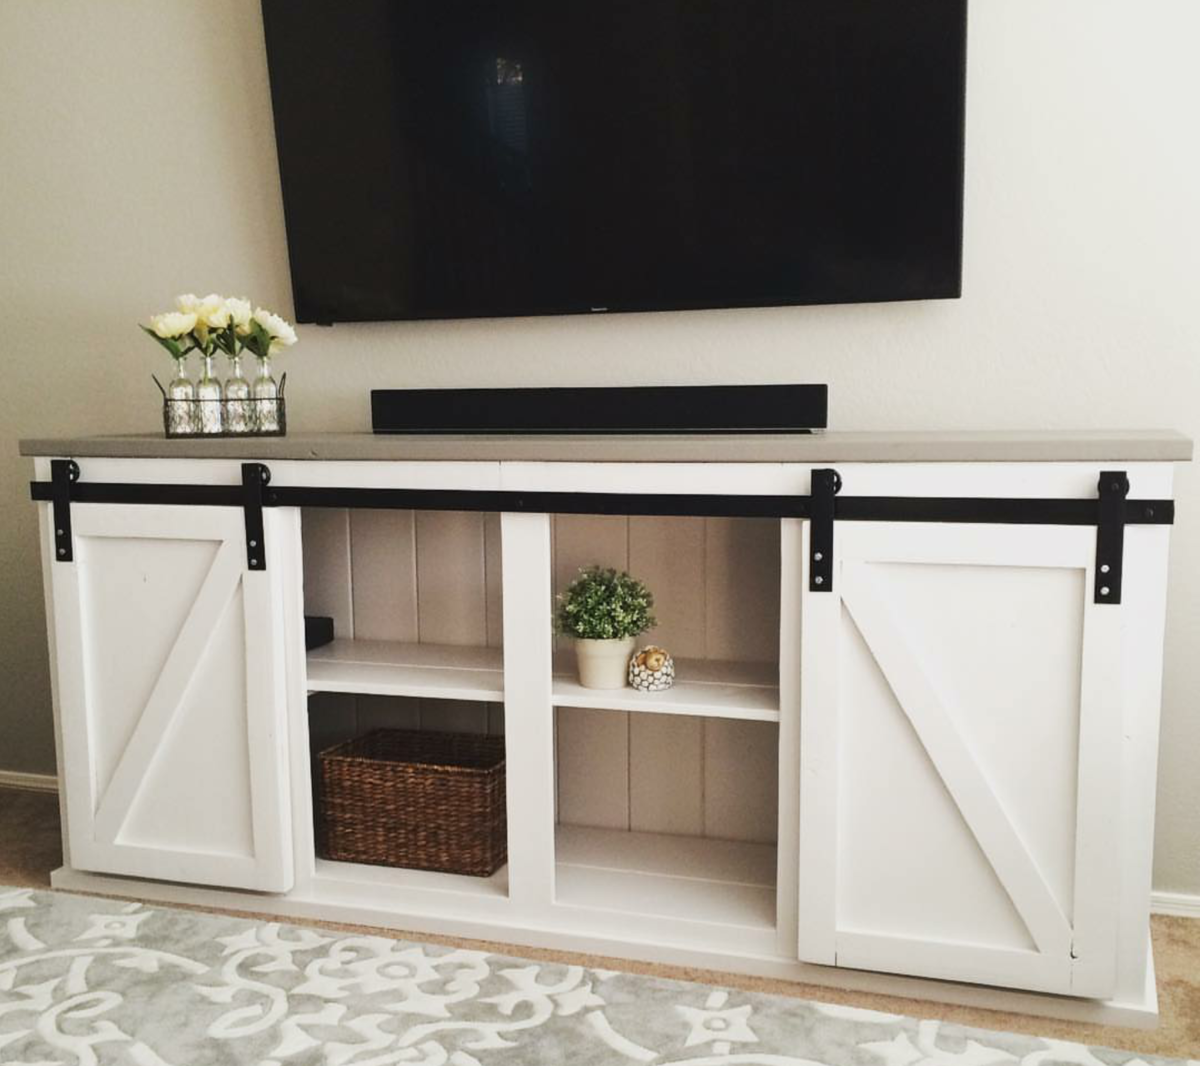 White Farmhouse Sliding Door Cabinet: Sliding Door Console - DIY Projects